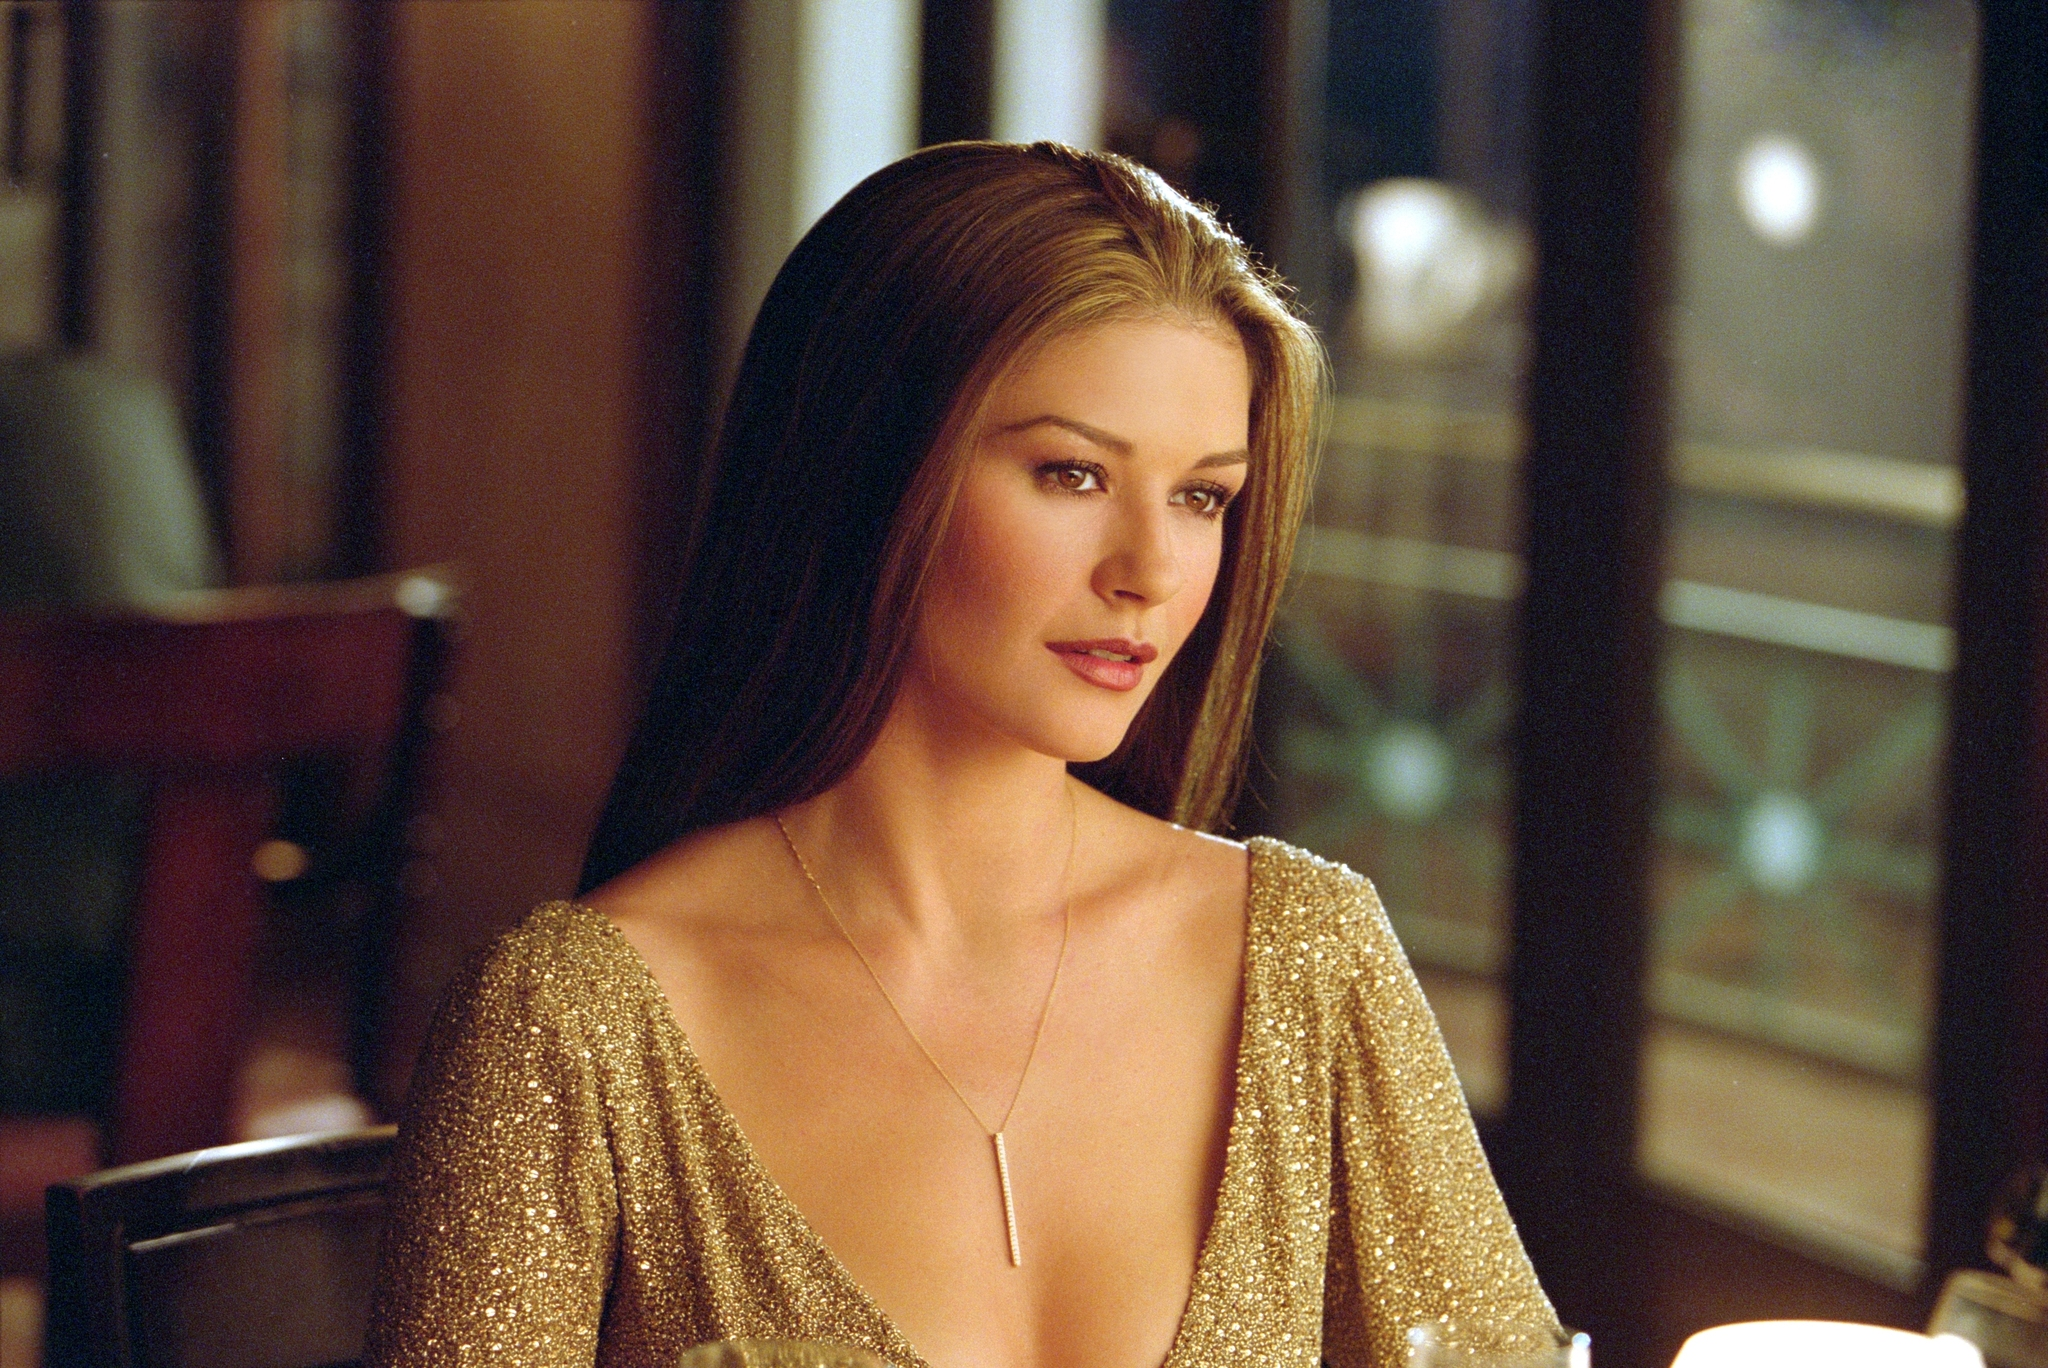 6w3 20 Things You Never Knew About Catherine Zeta-Jones